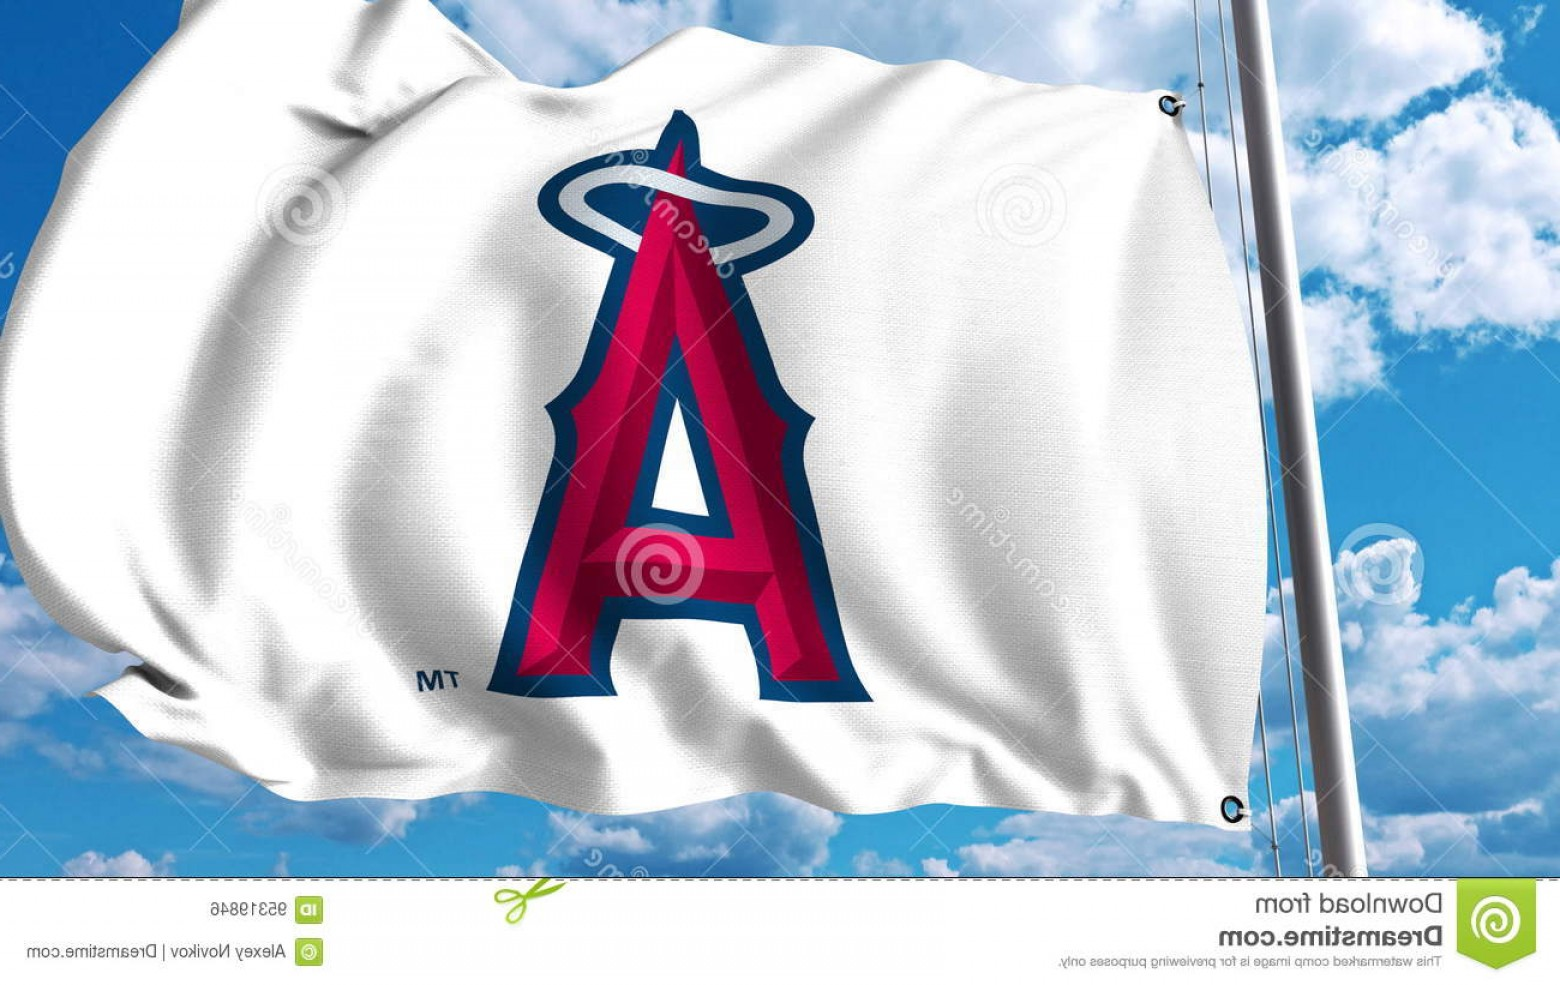 Anaheim Angels Logo Vector Art: Editorial Photo Waving Flag Los Angeles Angels Anaheim Professional Team Logo Editorial D Rendering Image